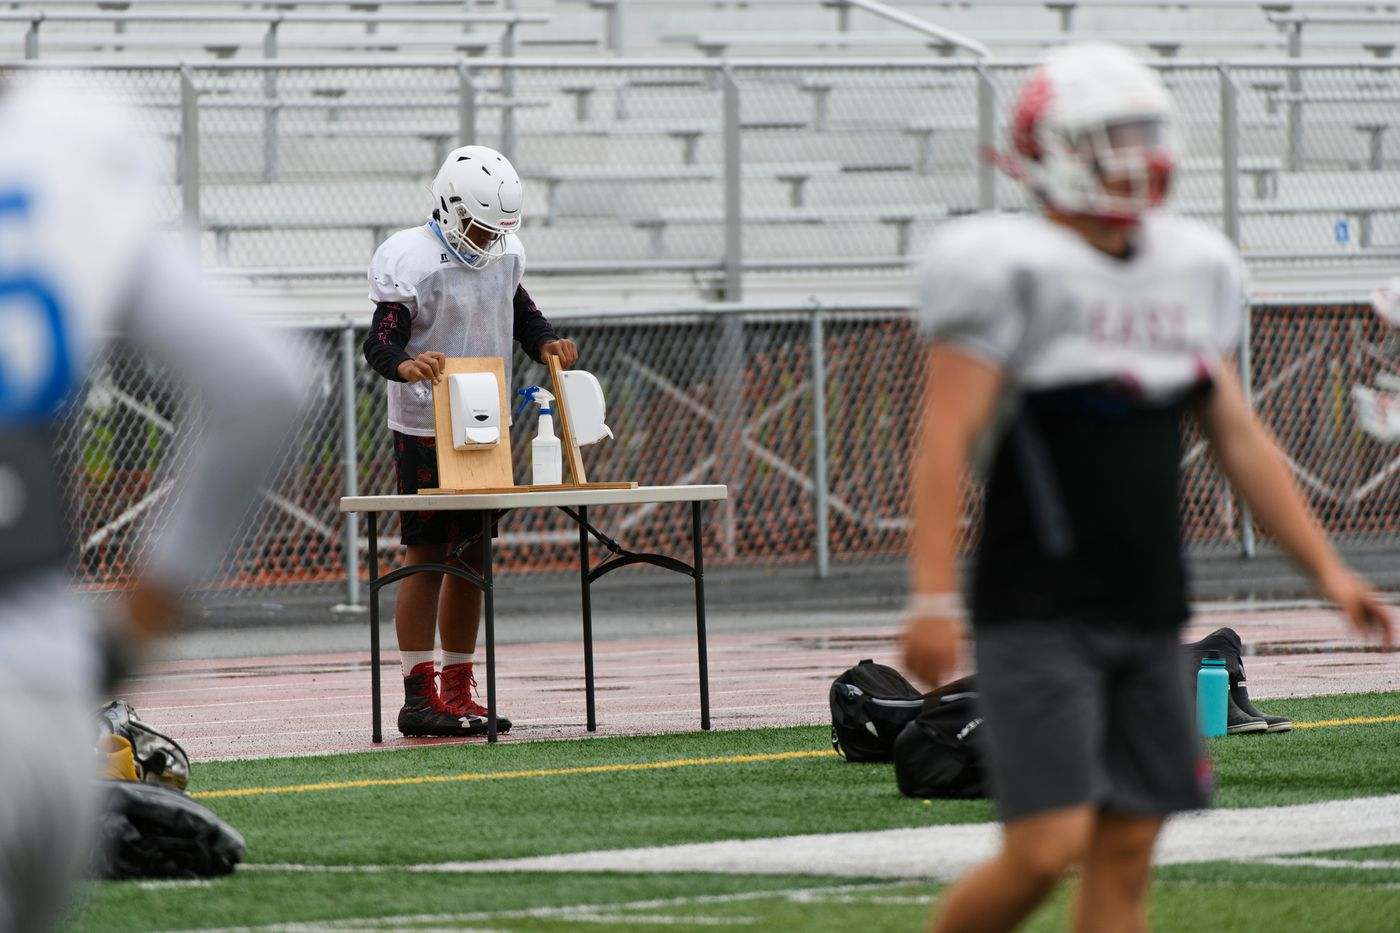 An East High School player sets hand sanitizer out during practice on September 2, 2020. (Marc Lester / ADN)